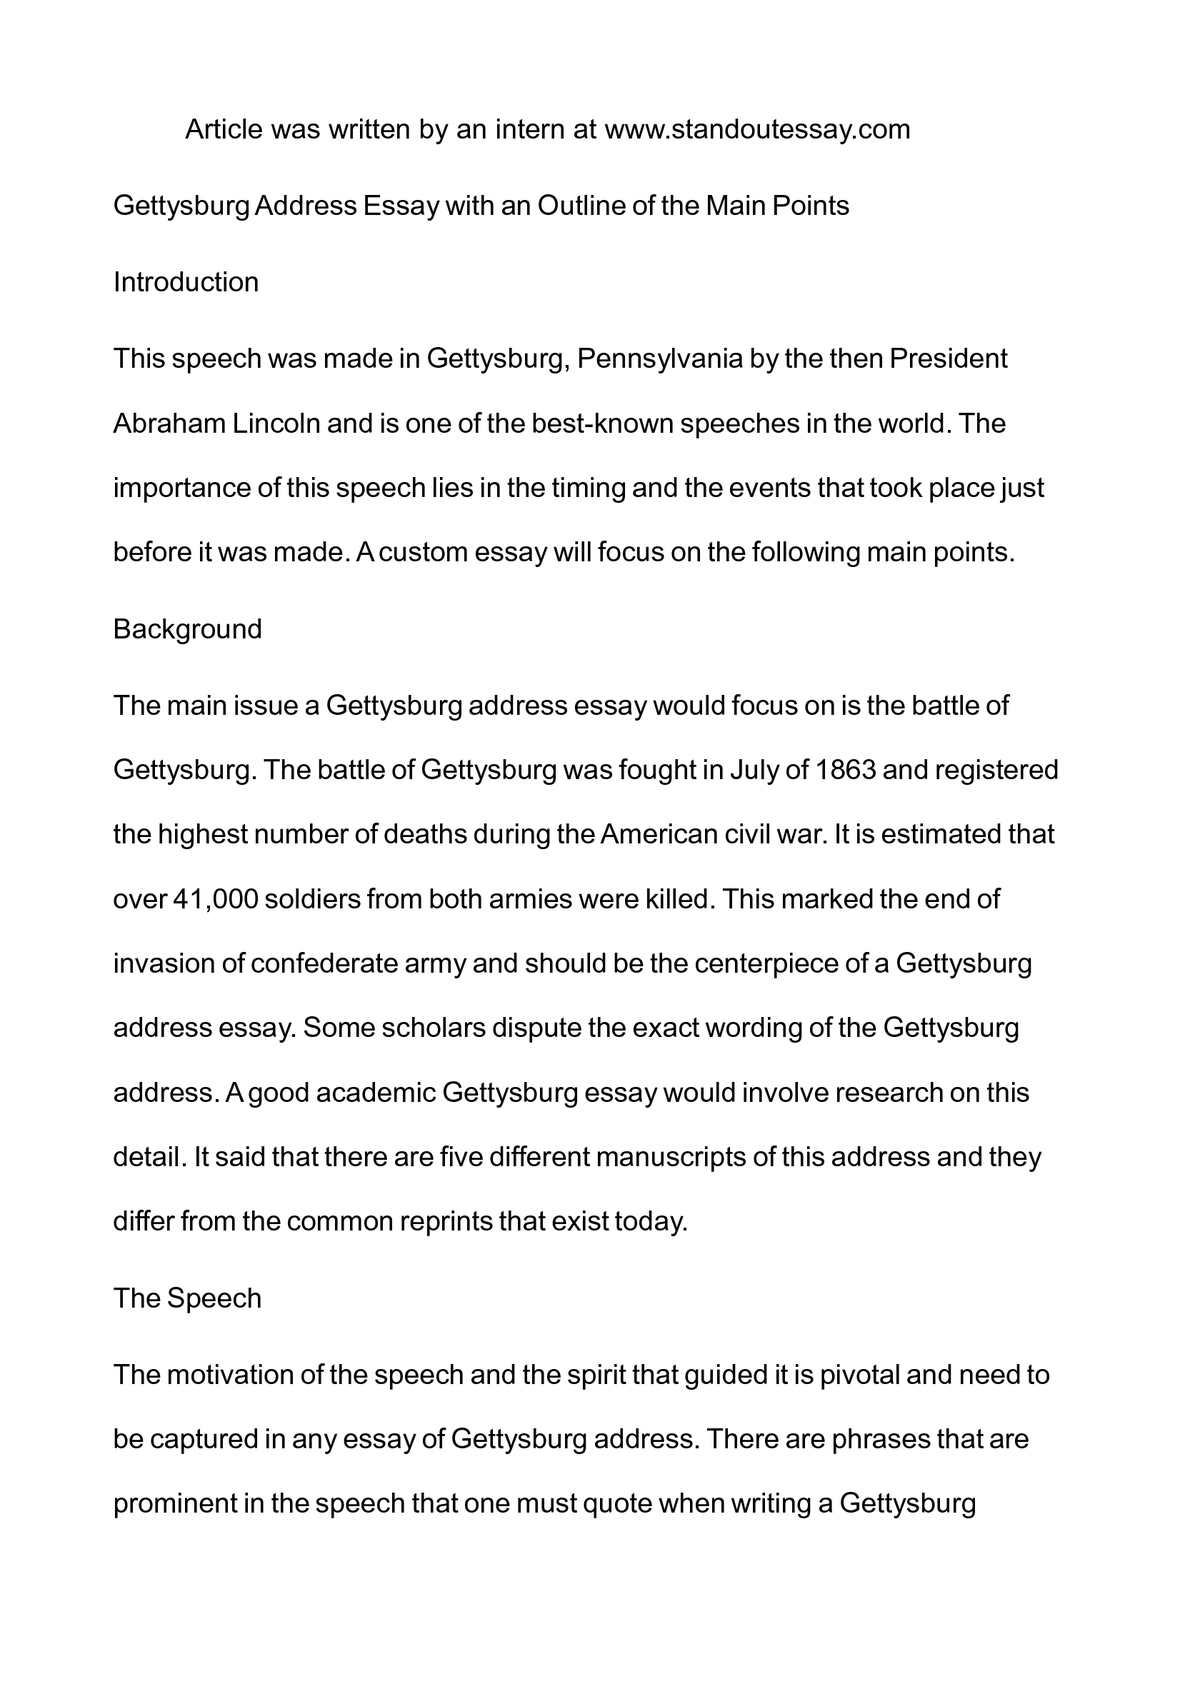 introduction of speech essay best speech essay best speech essay  calam eacute o gettysburg address essay an outline of the main calameacuteo gettysburg address essay an